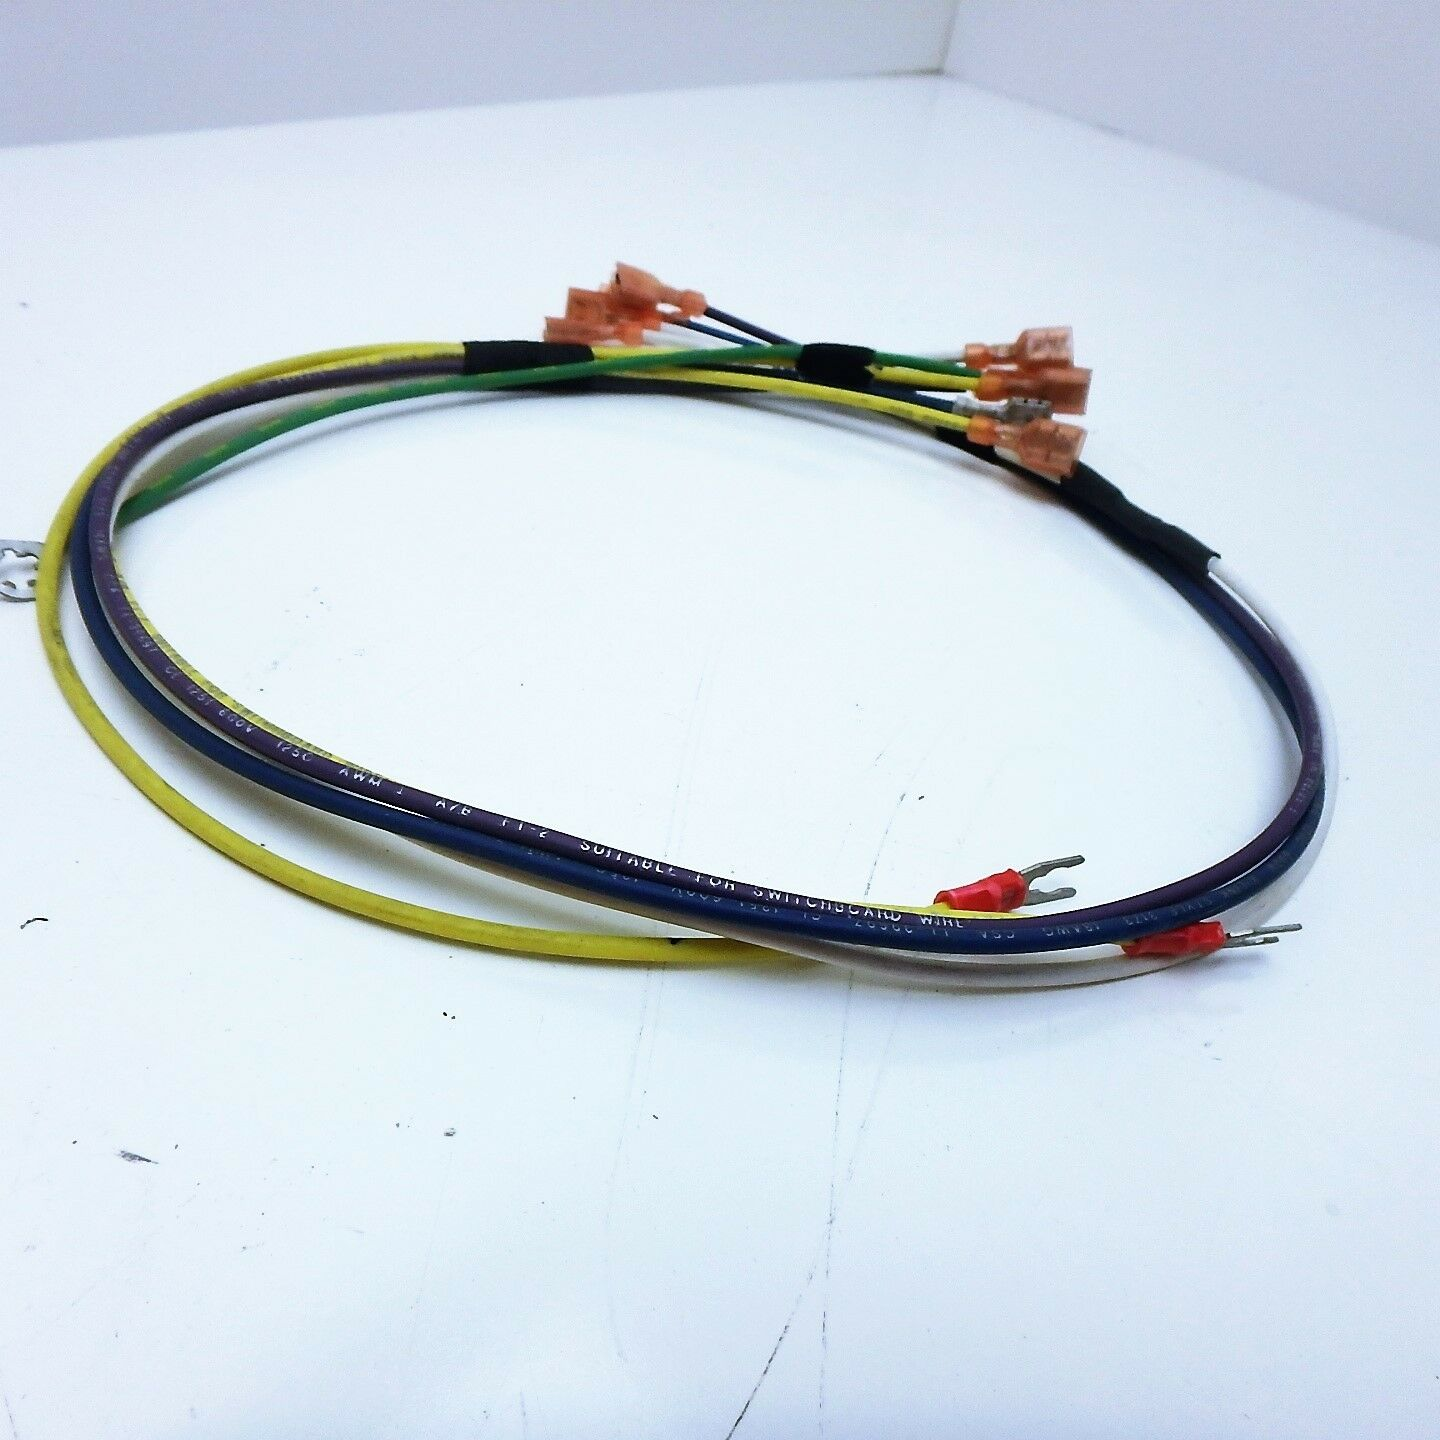 GARLAND Range/Stove/Oven Ignition Module Wire Harness Assembly #1804726 1  of 2Only 2 available See More